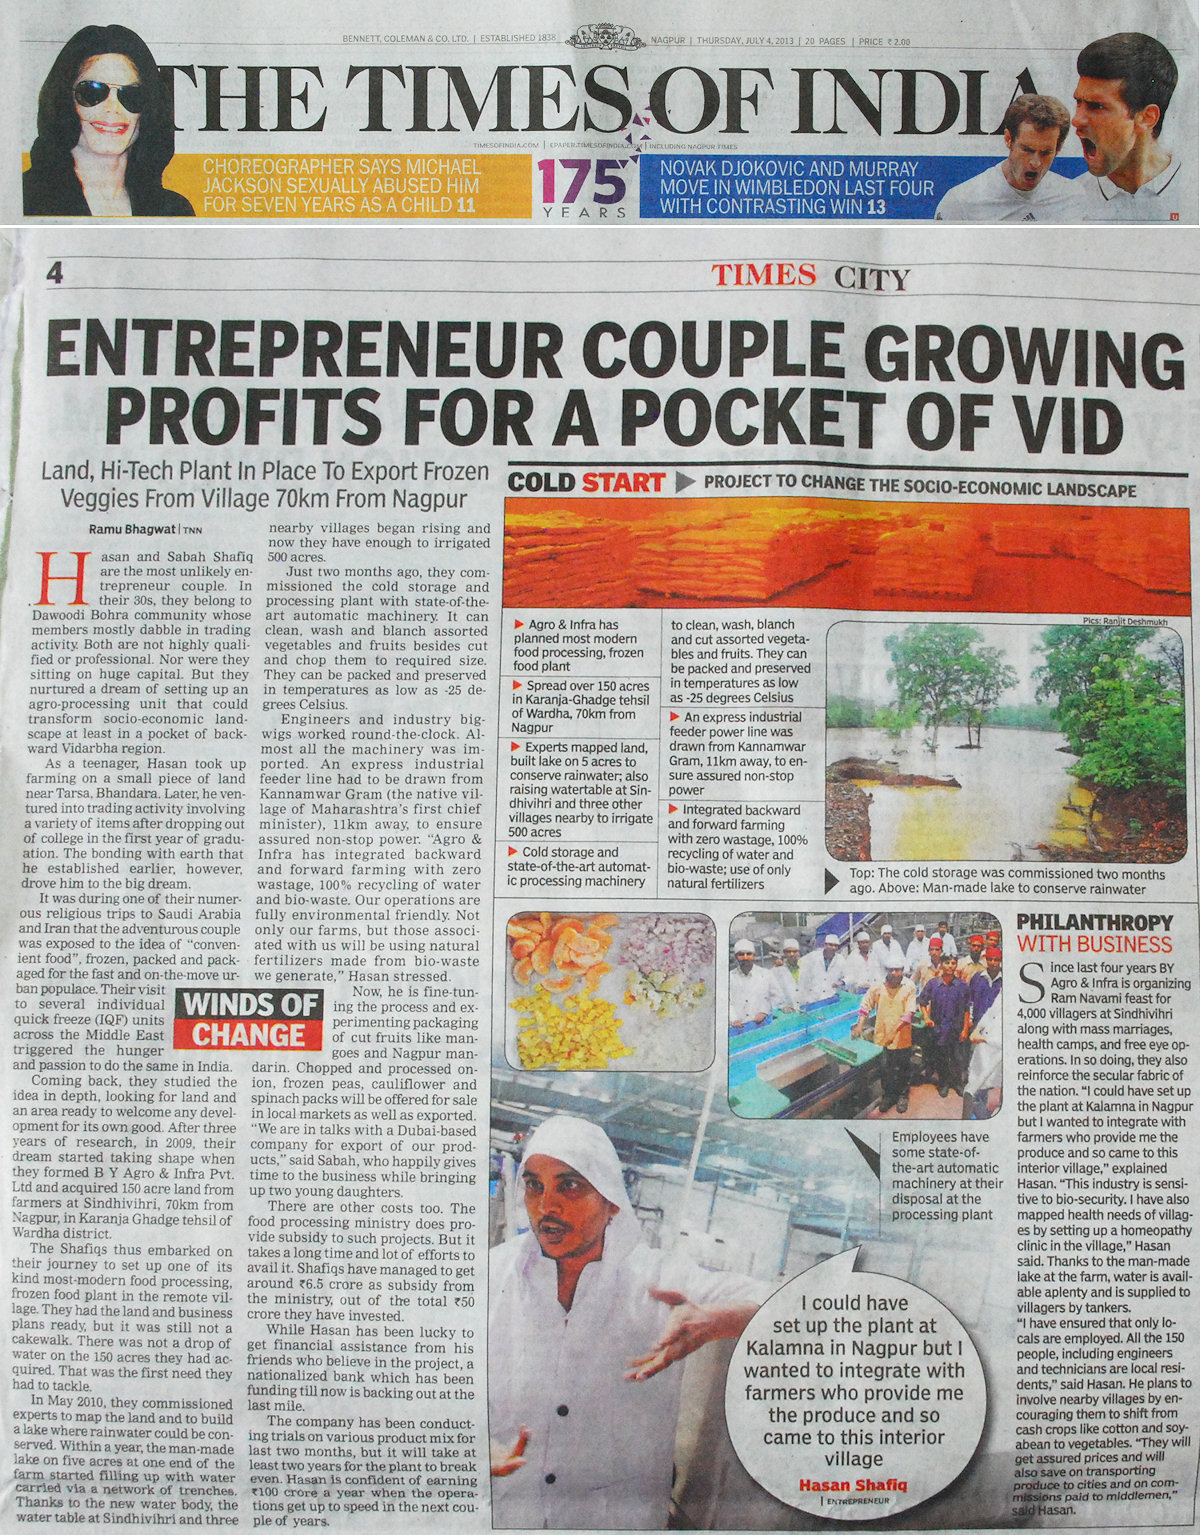 B.Y. Agro and Infra featured in Times of India